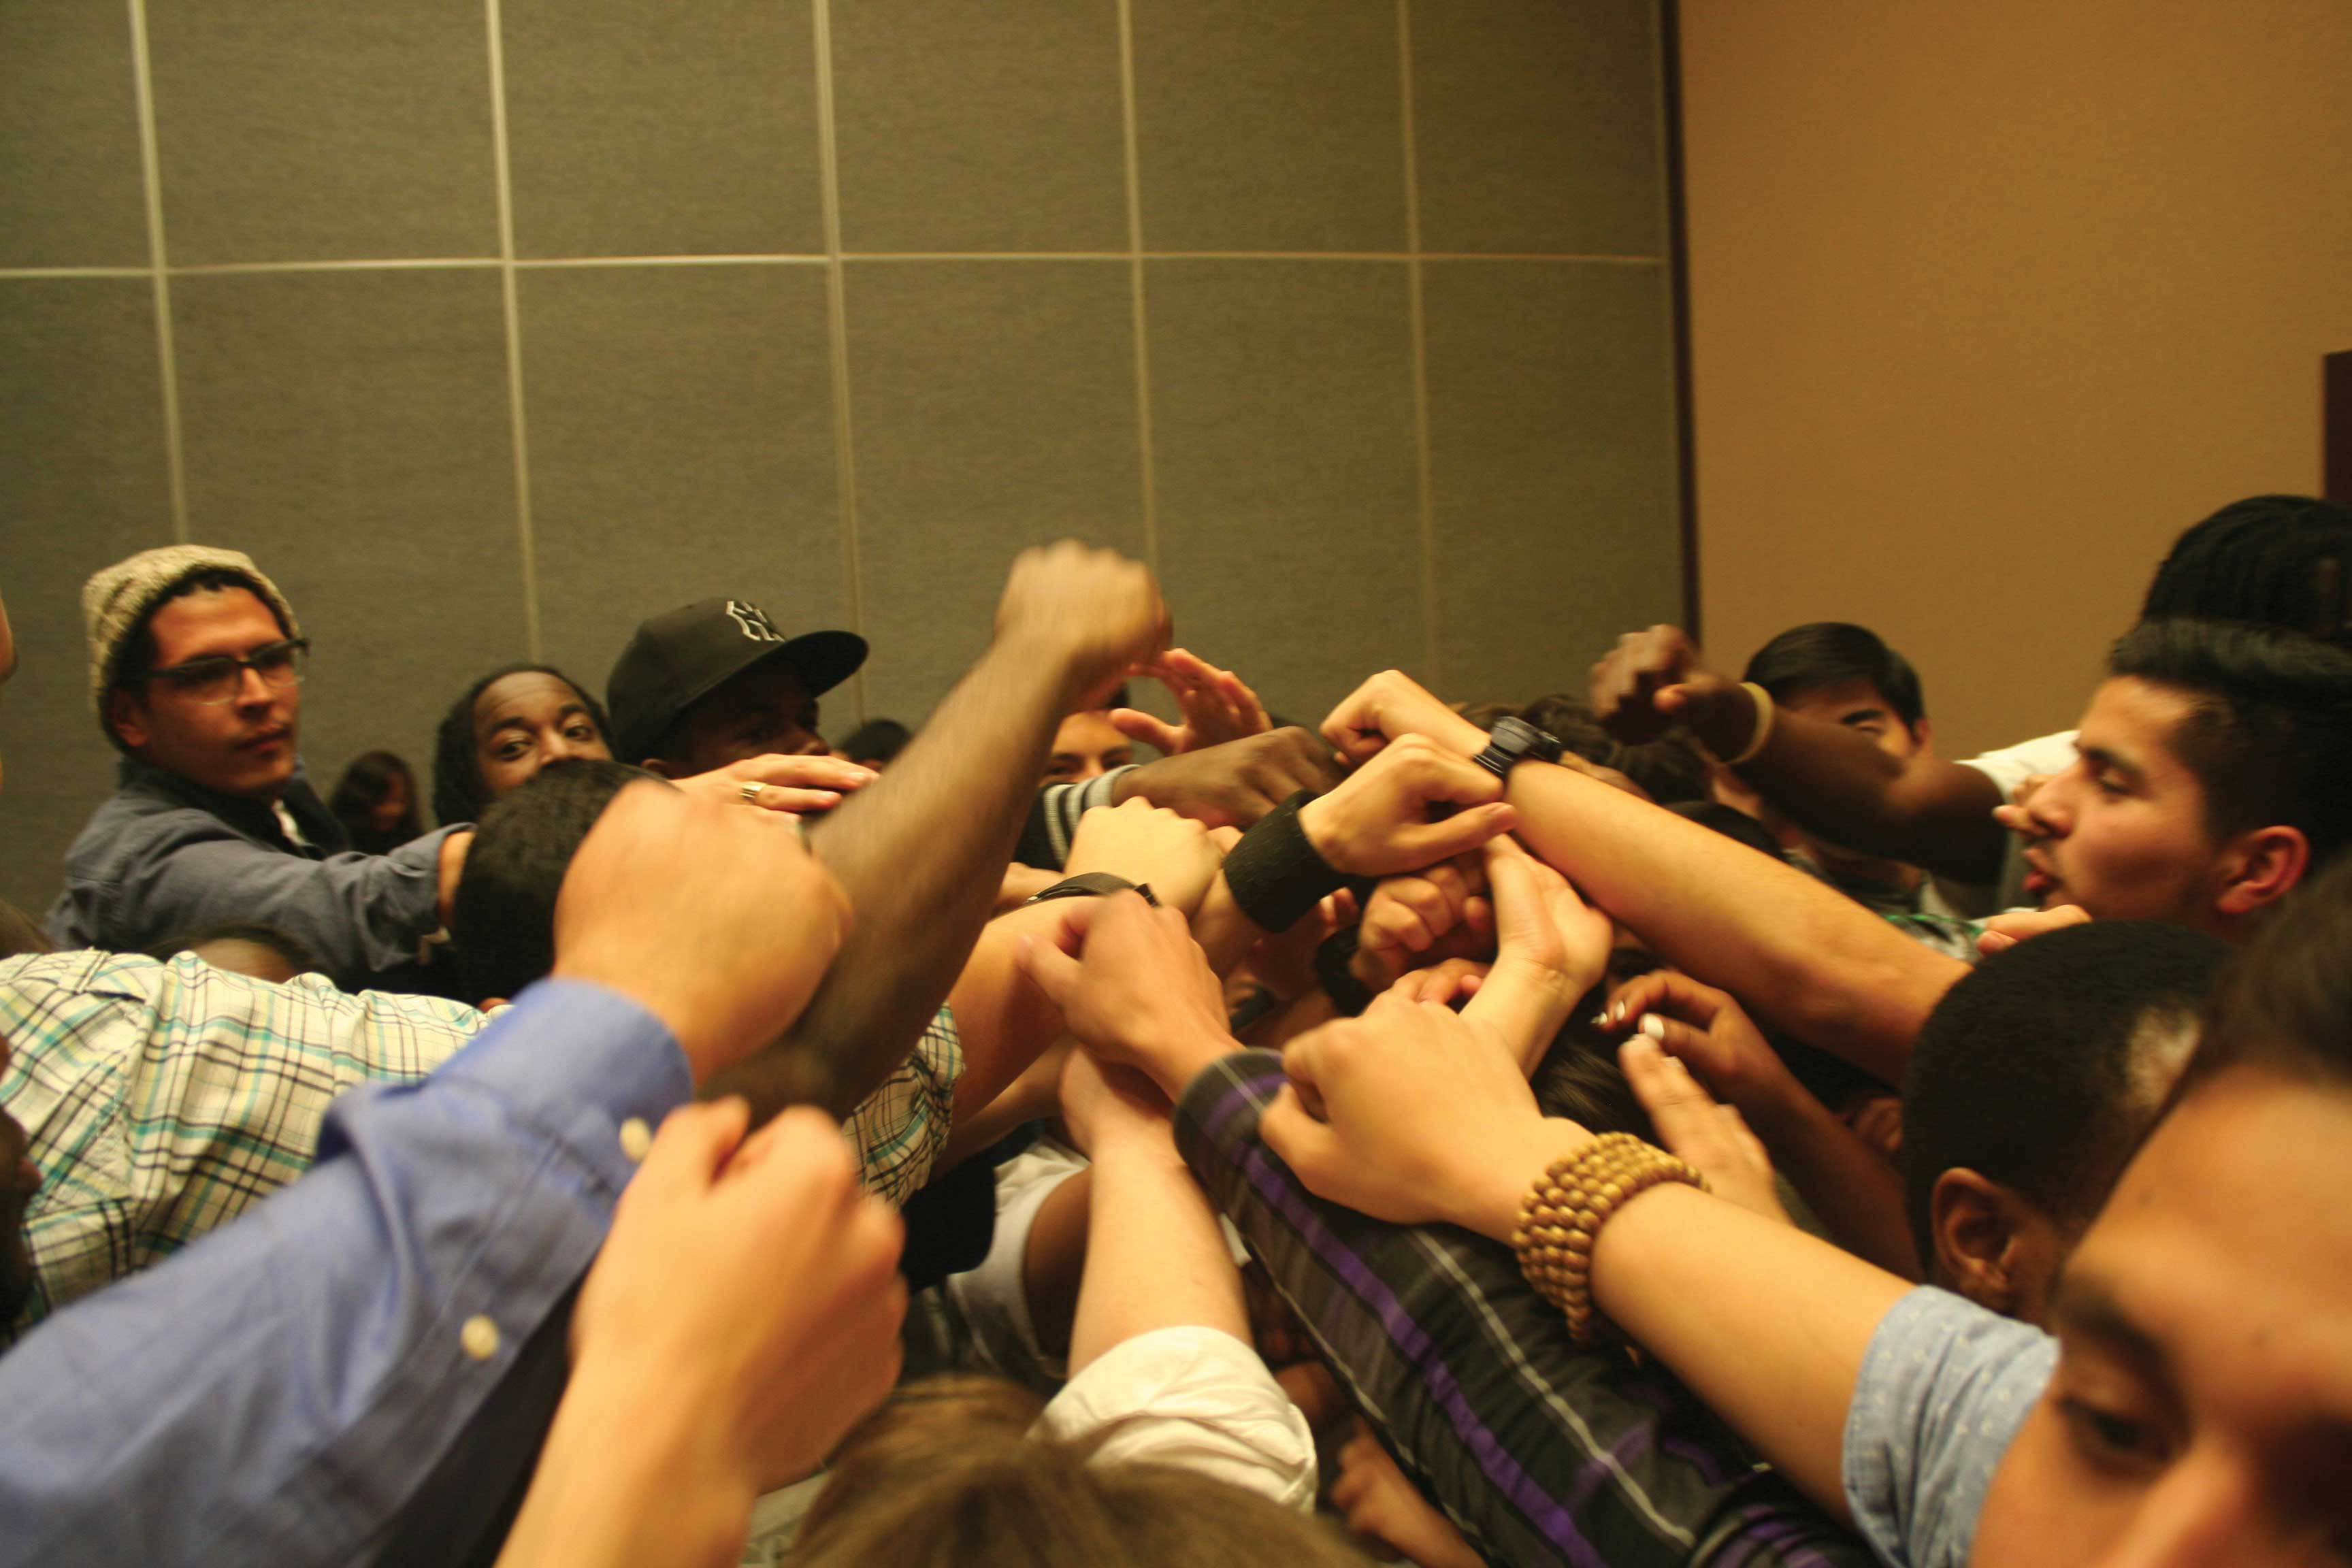 After our last check-in session with the school group. Pumping each other up for the last moments at Students Of Color Conference.